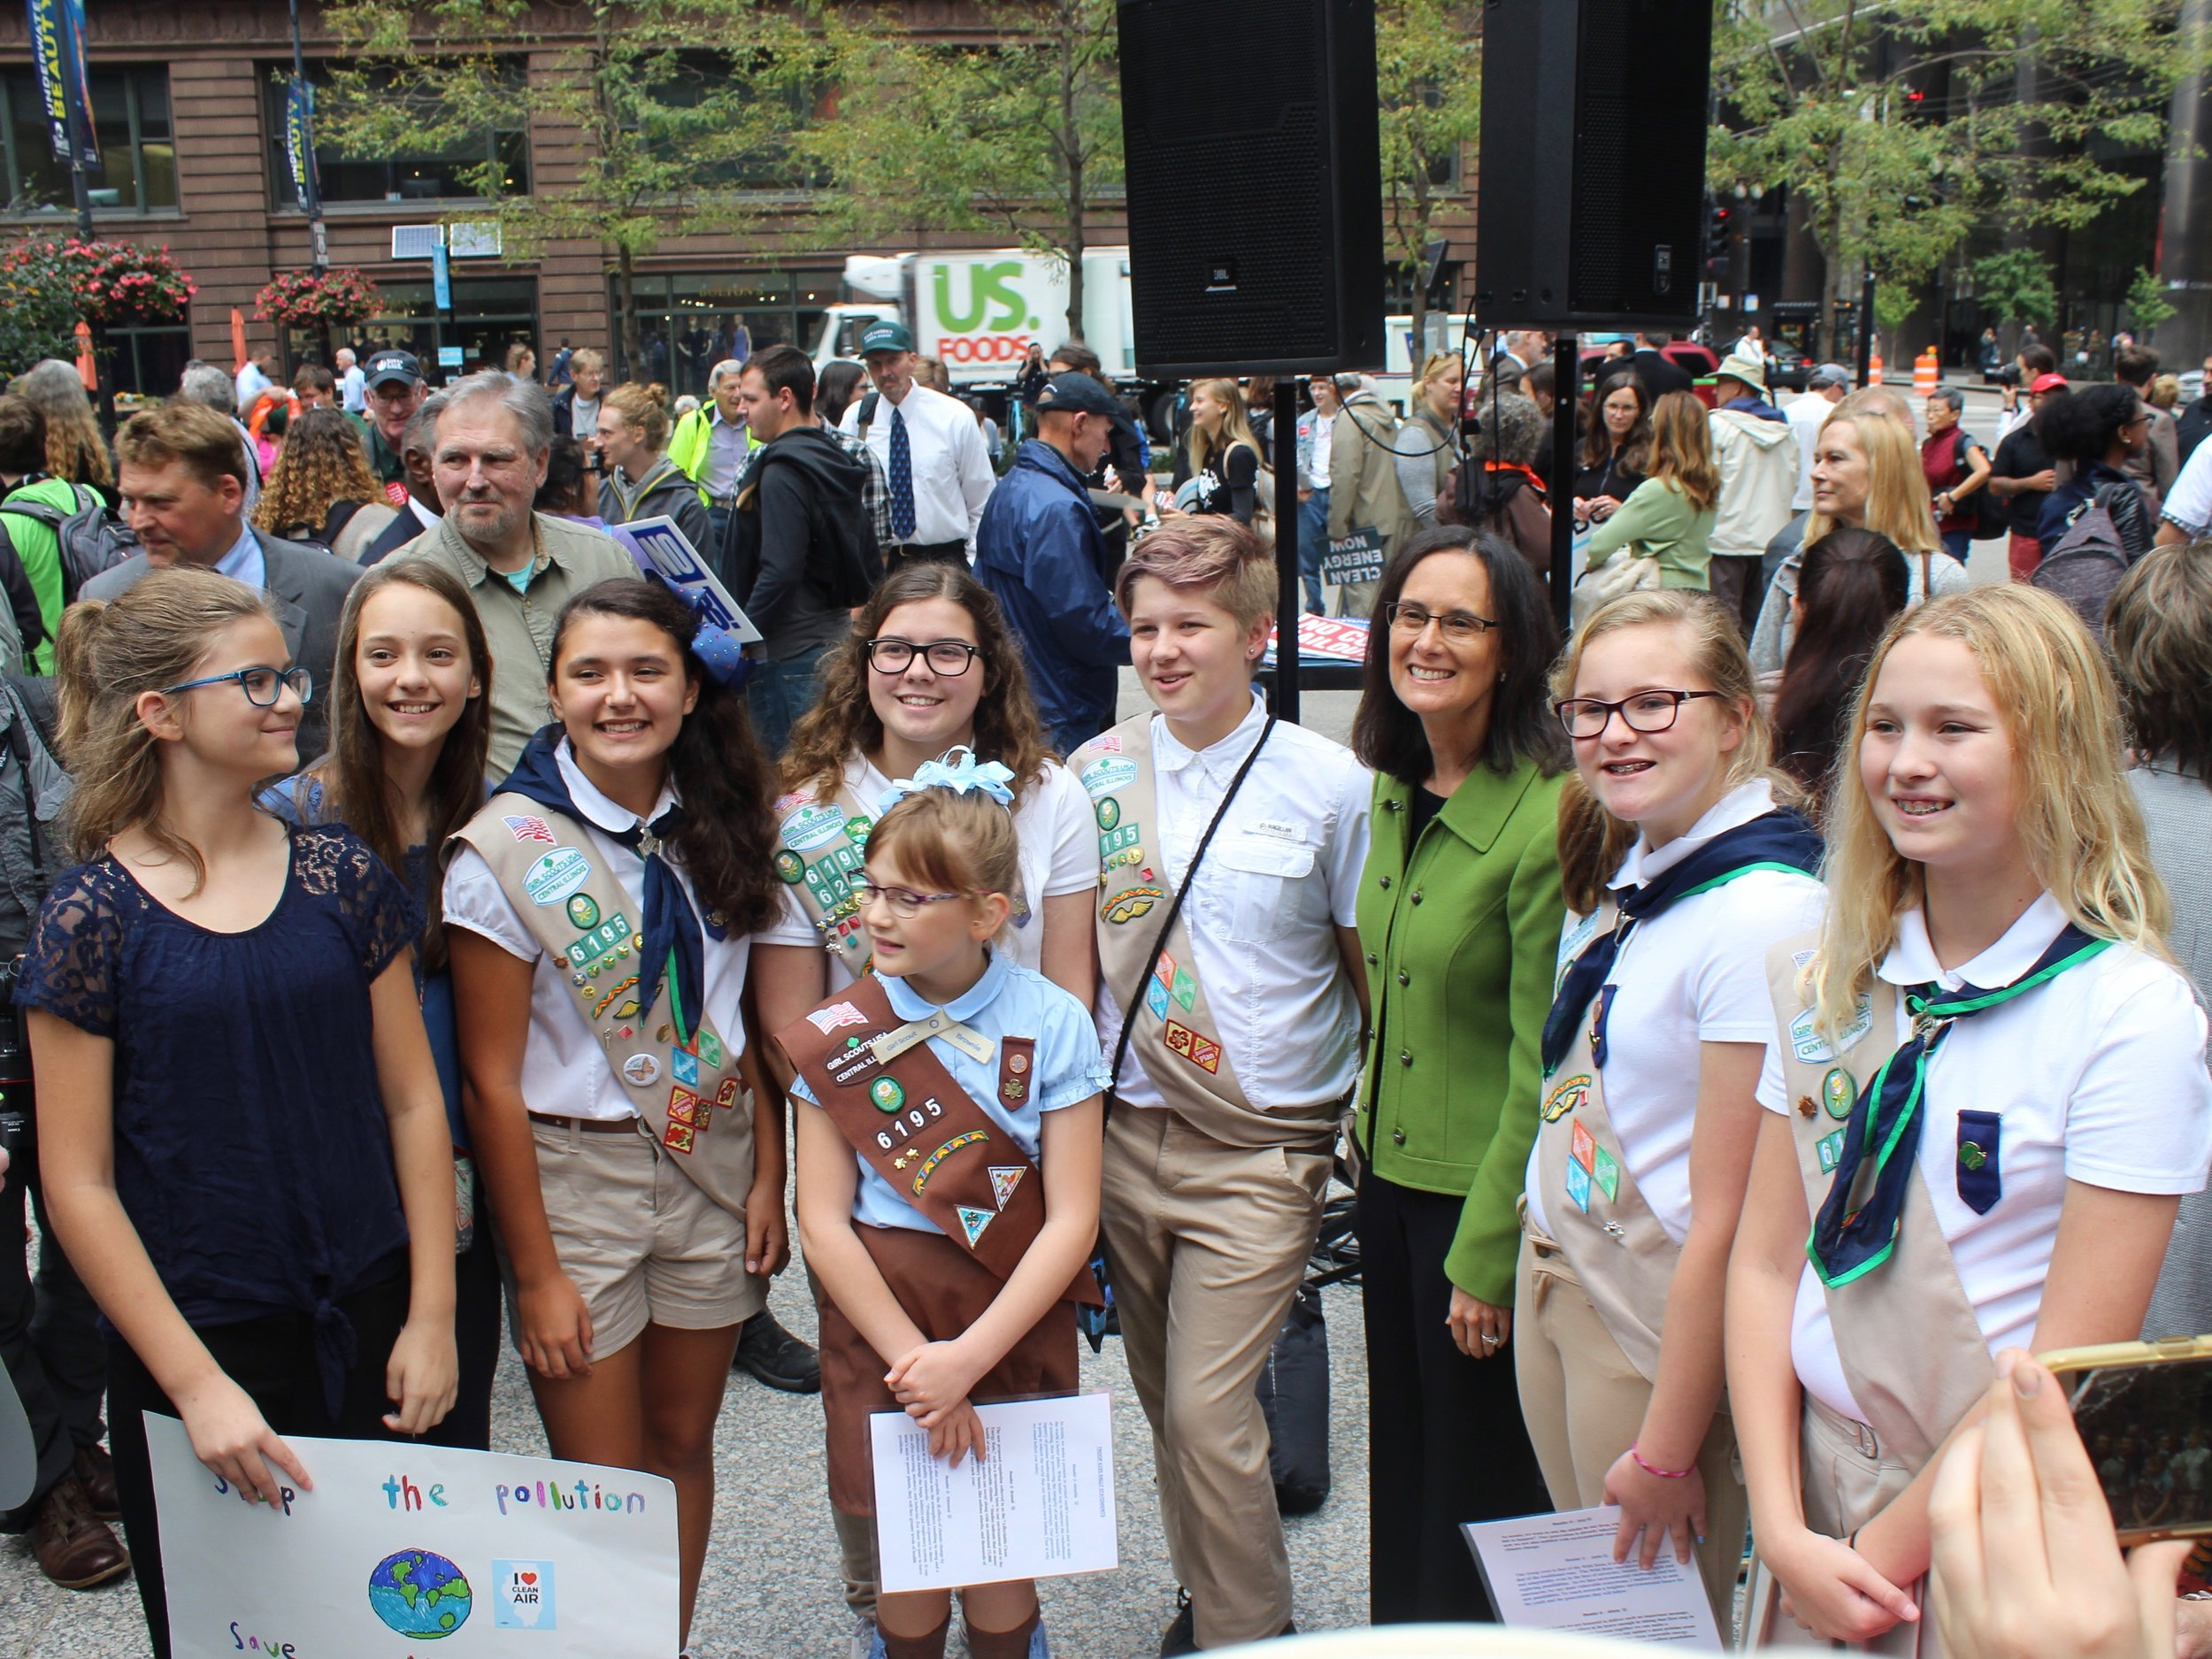 Members of Pleasant Plains Girl Scout Troop 6195 pose with Attorney General Madigan after Monday's protest in Chicago. (One Illinois/Ted Cox)